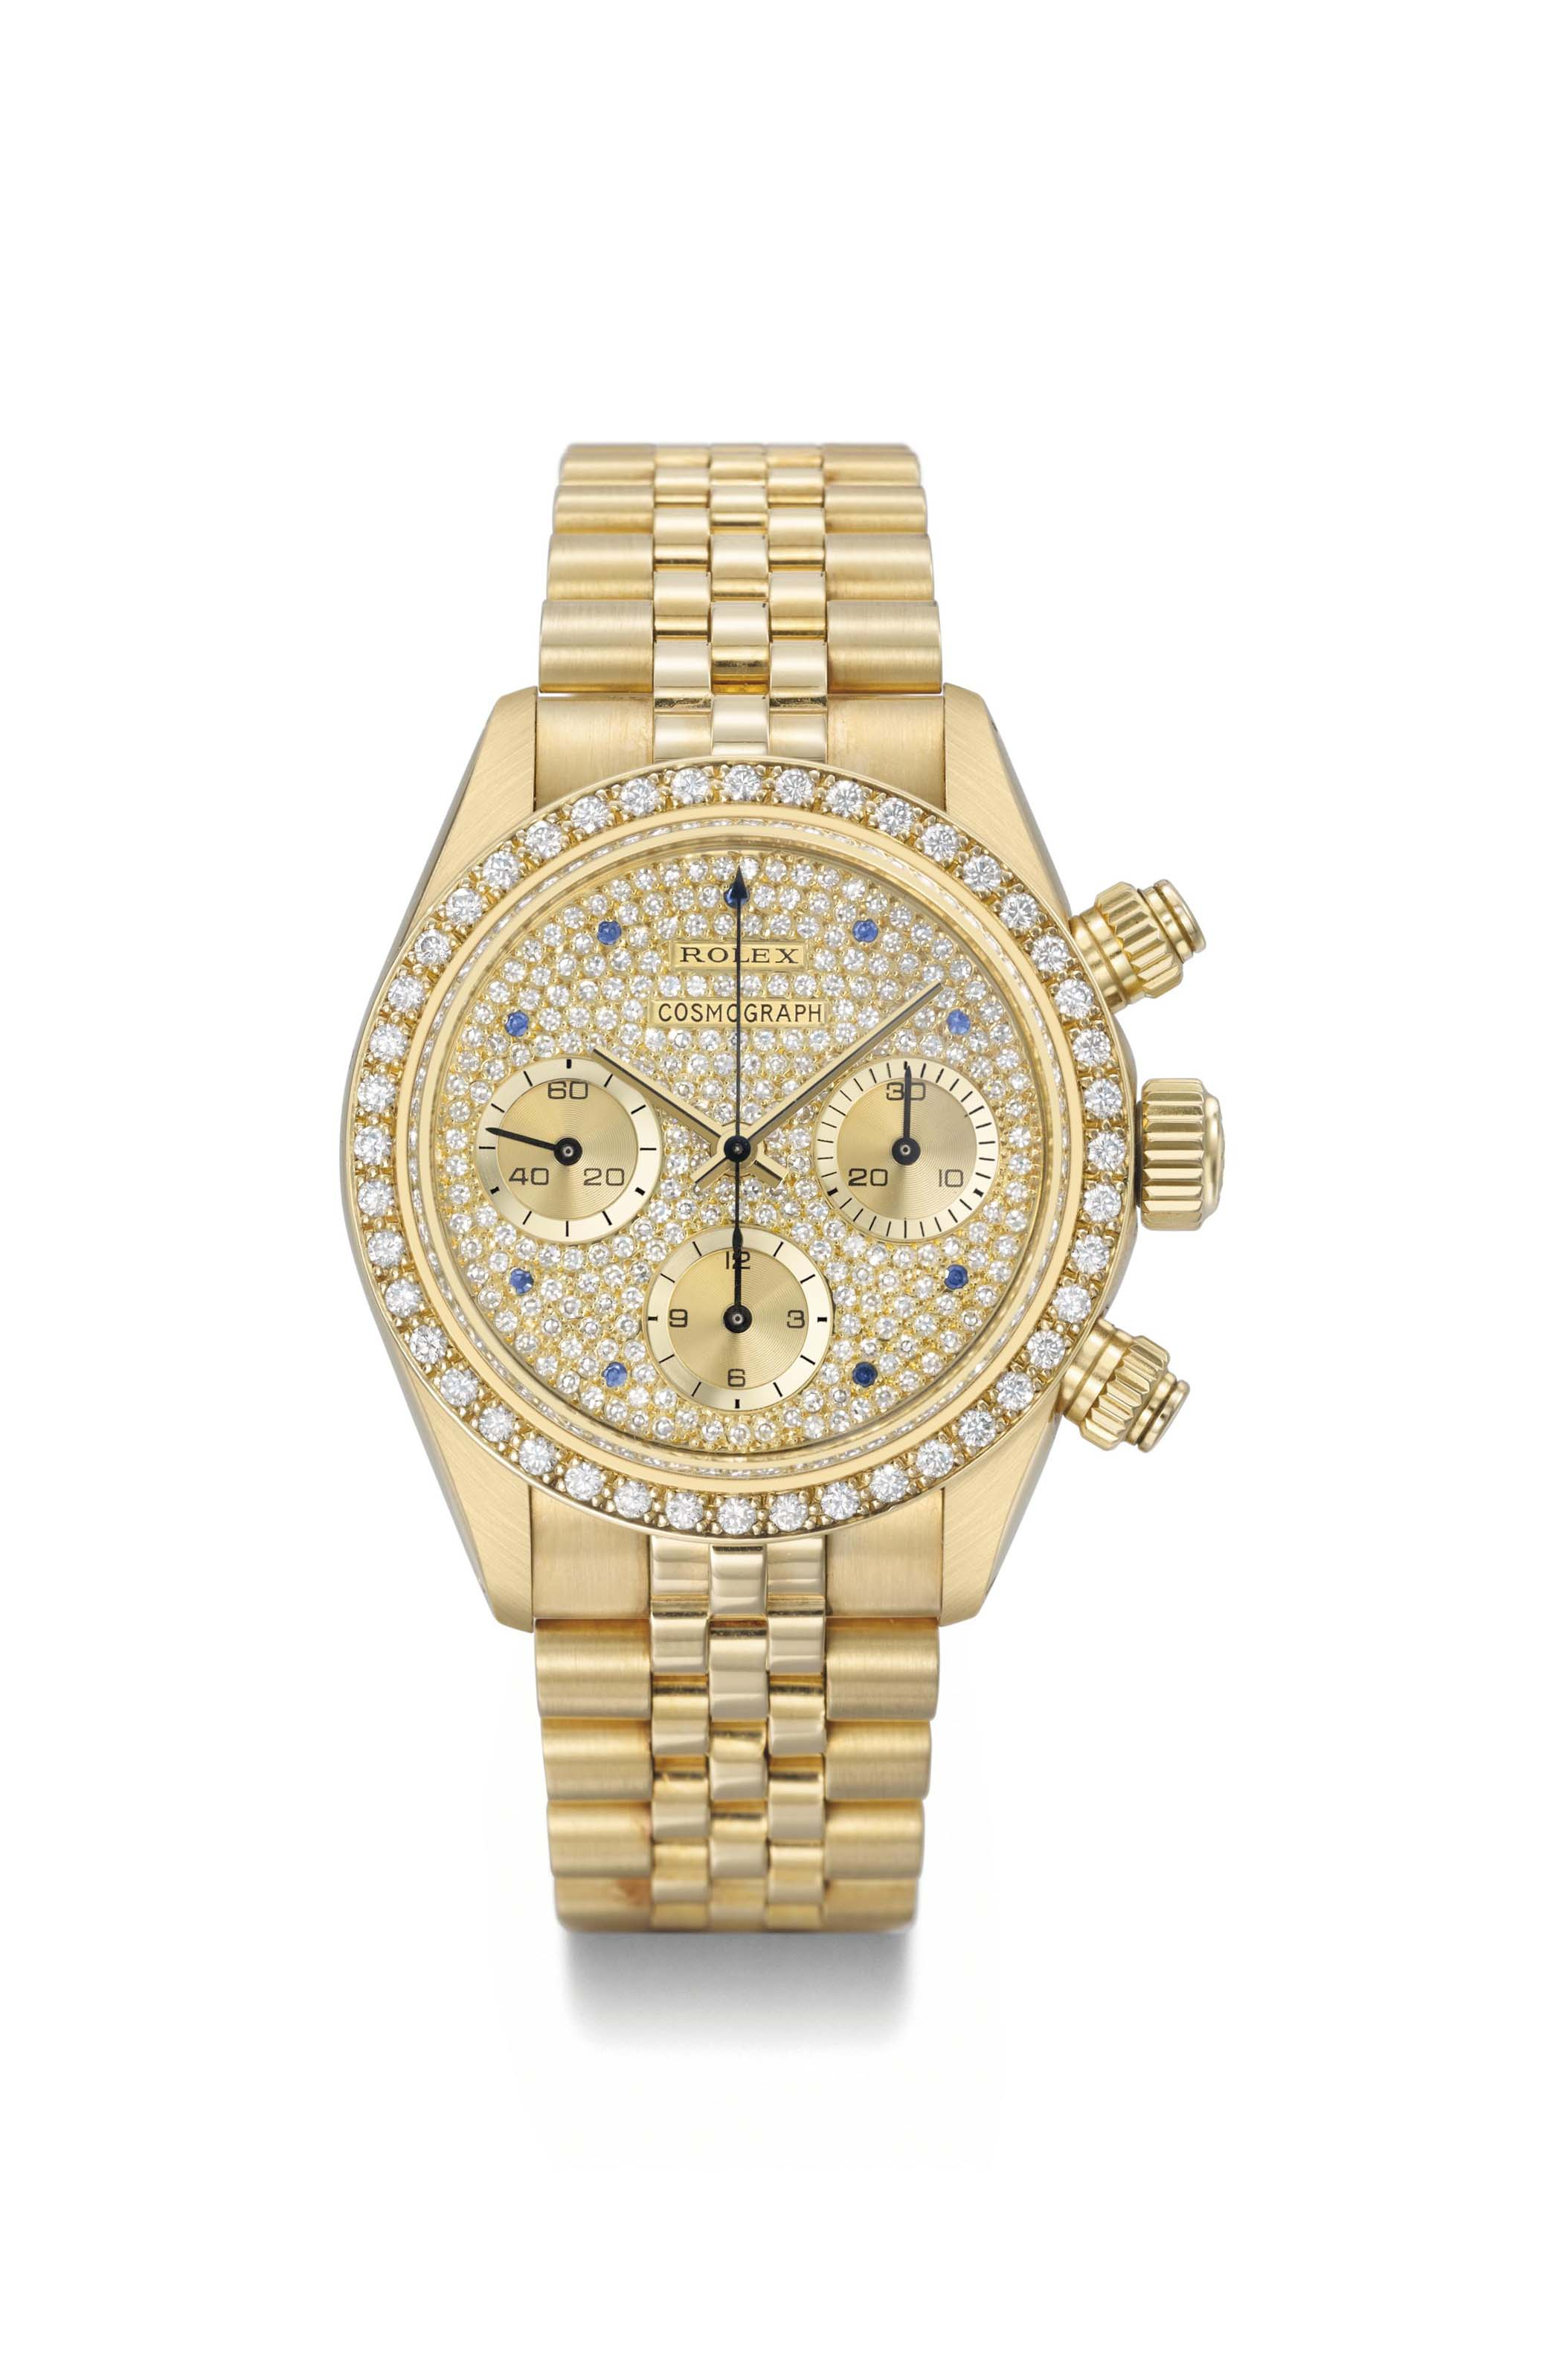 Rolex. An extremely rare and very attractive 18K gold, diamond and sapphire-set chronograph wristwatch with bracelet, original guarantee and box